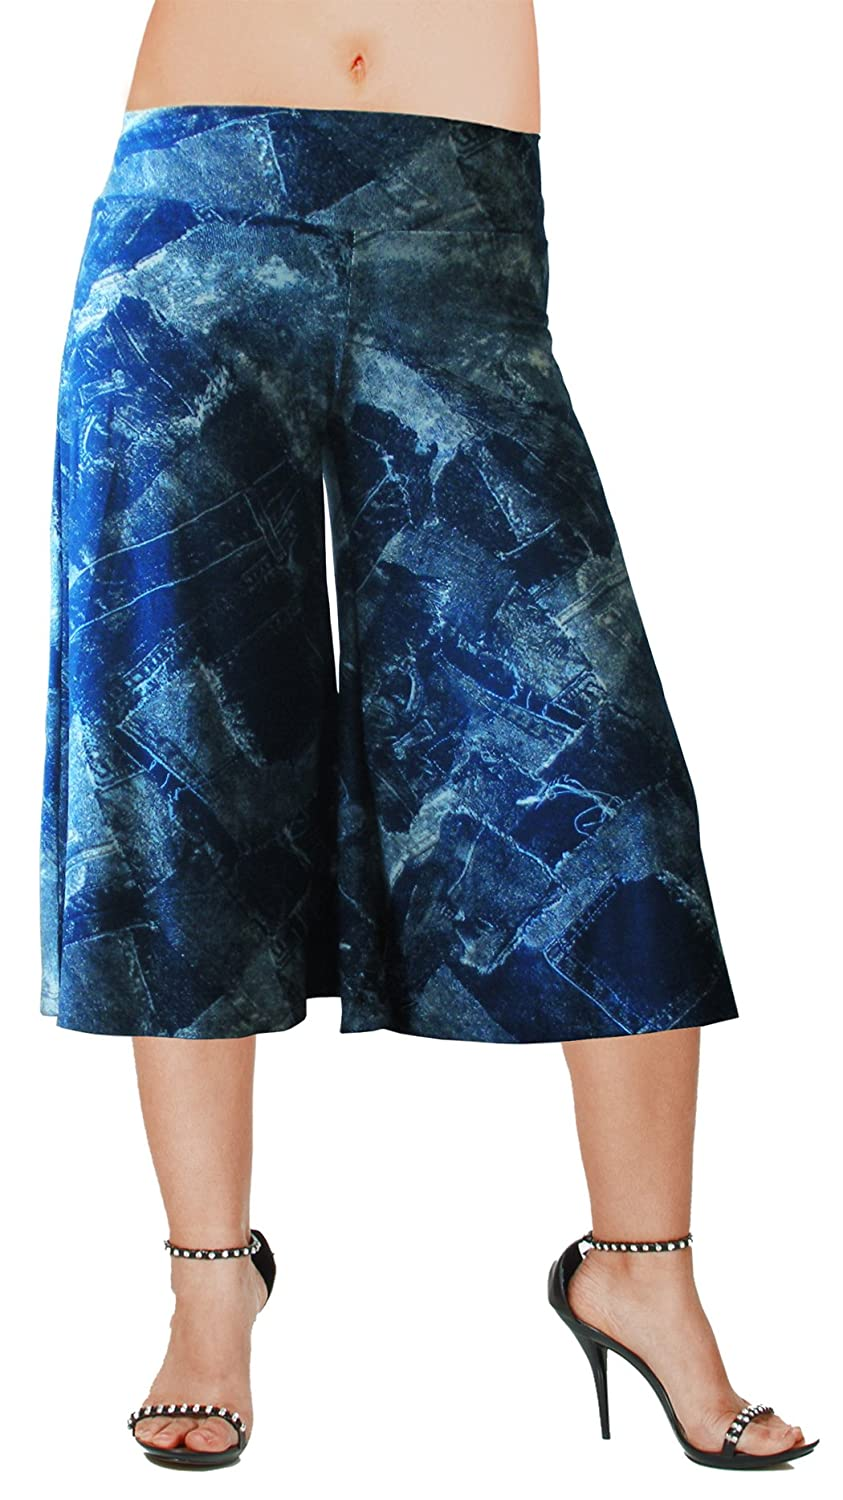 Hot Fash Flowy Soft Gaucho Pants Made in The USA 25 Colors Available - Capris